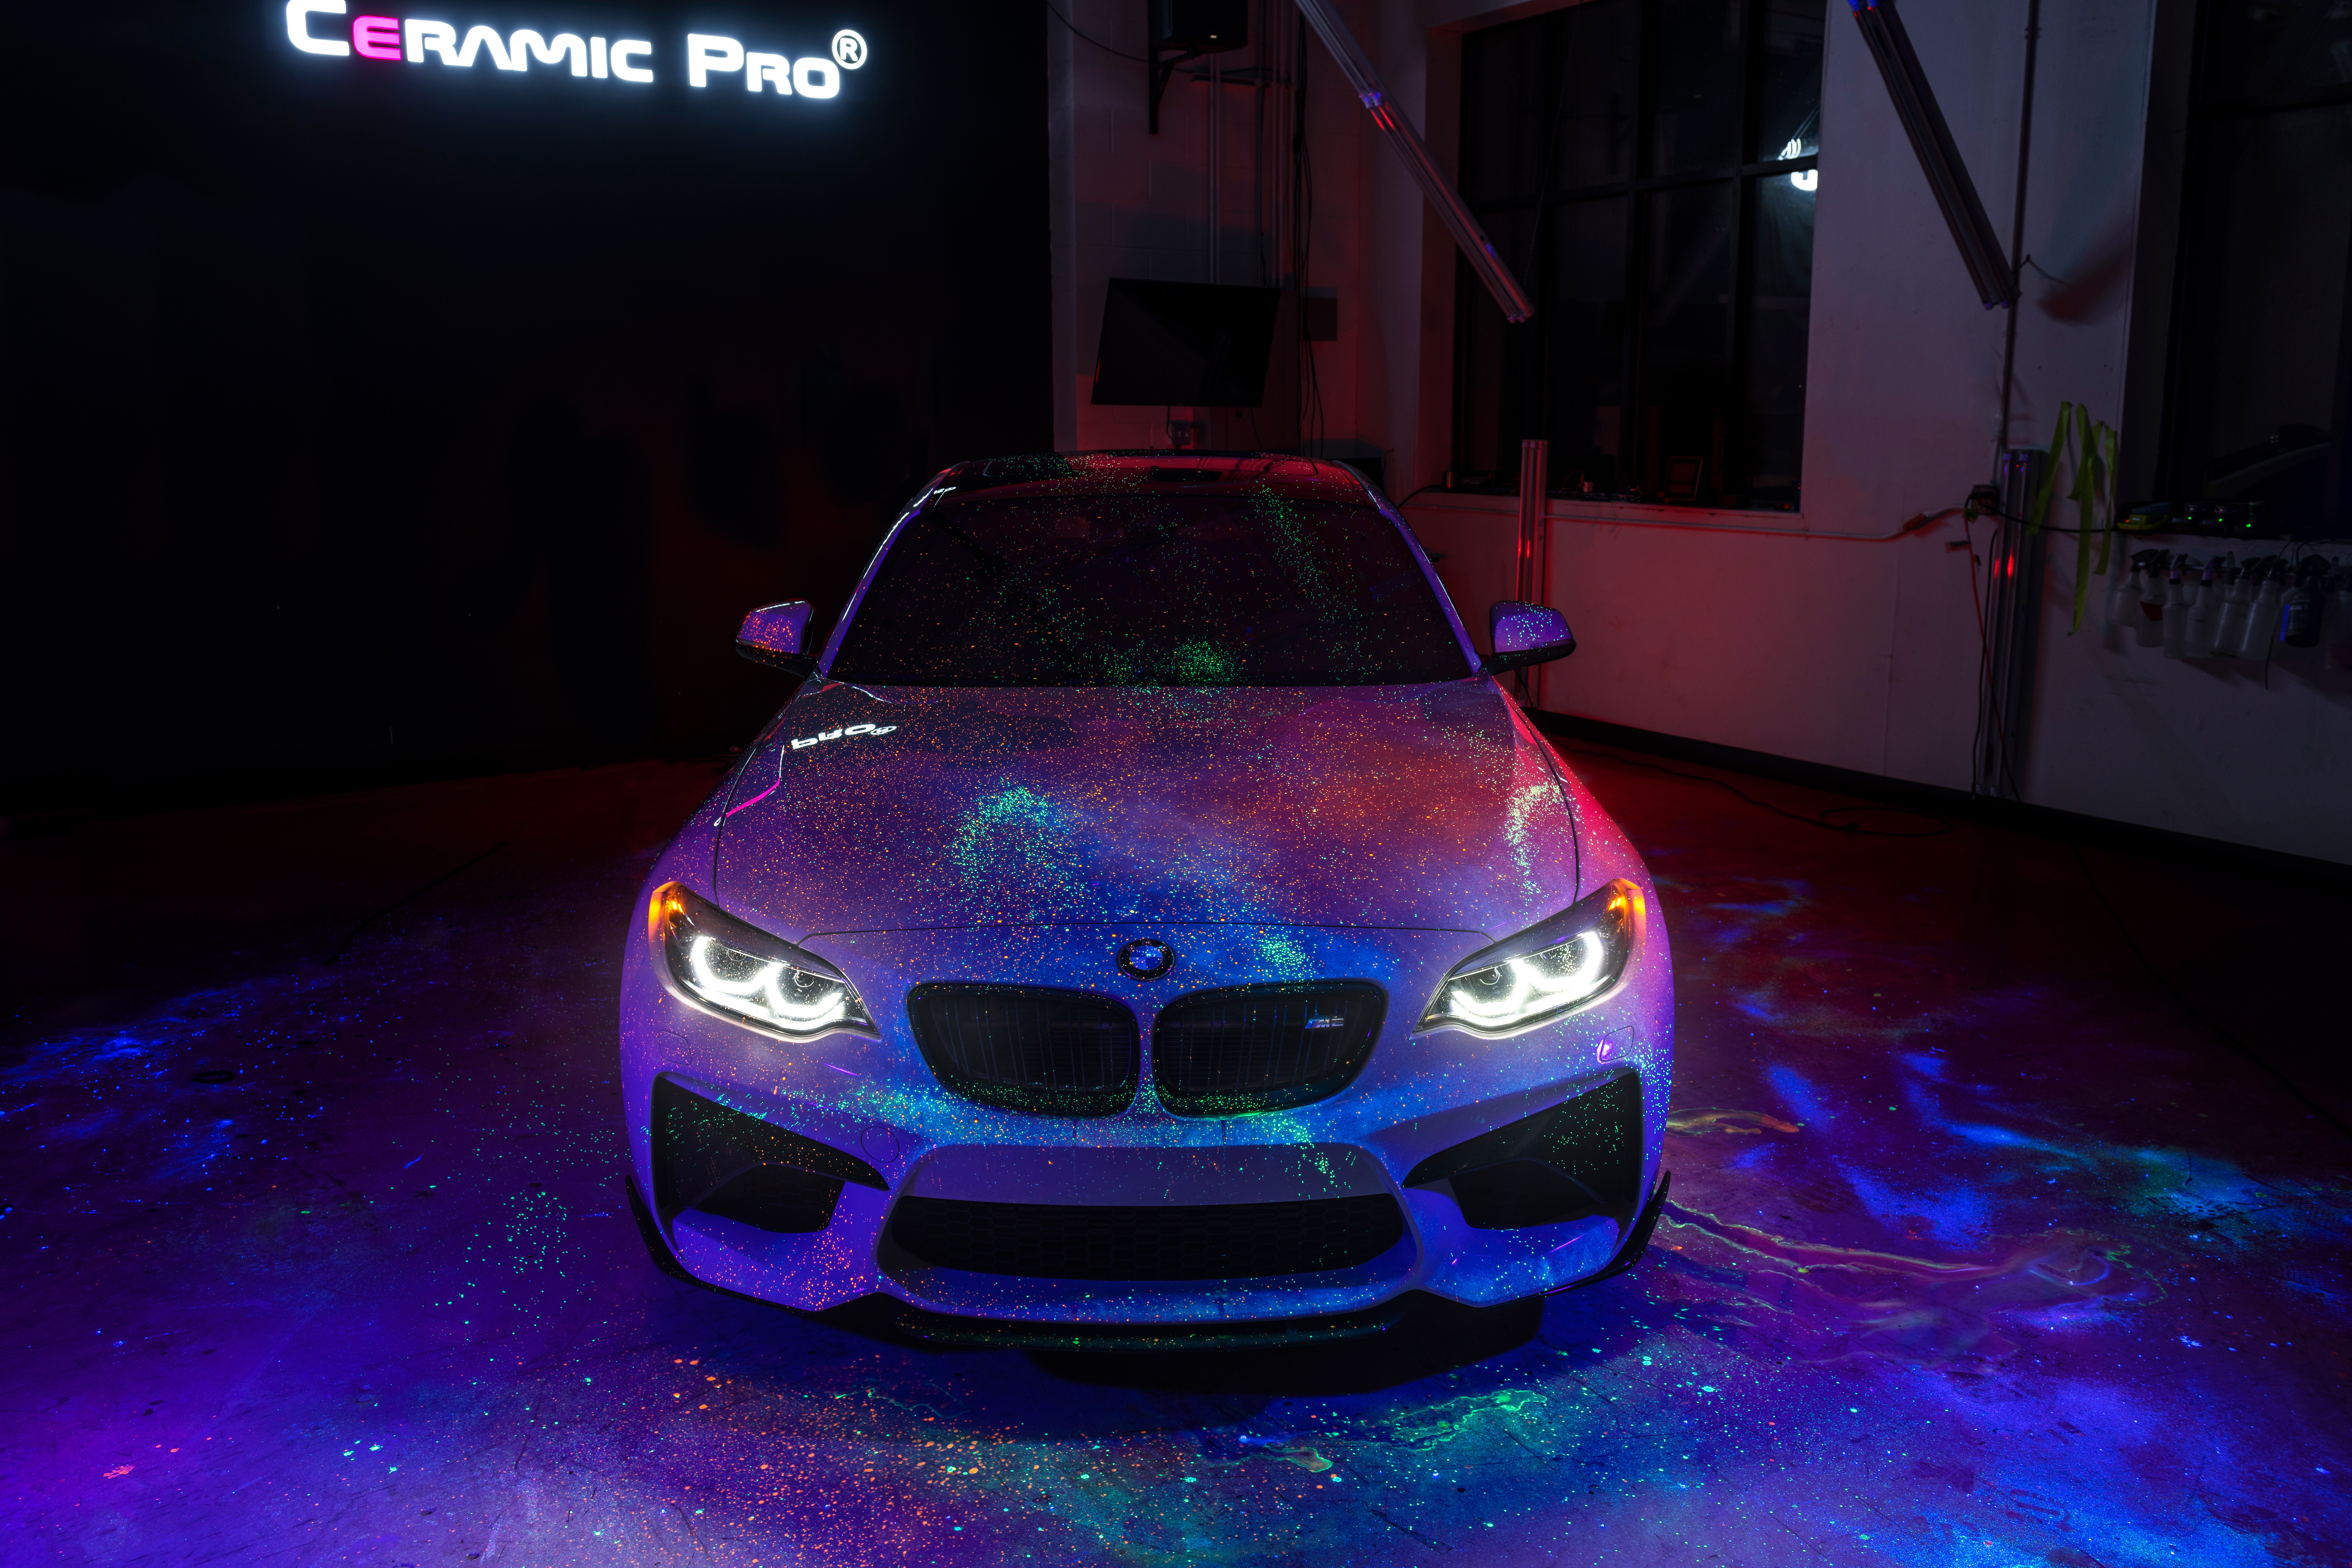 Ceramic Pro Twin Cities BMW Paint Protection Film